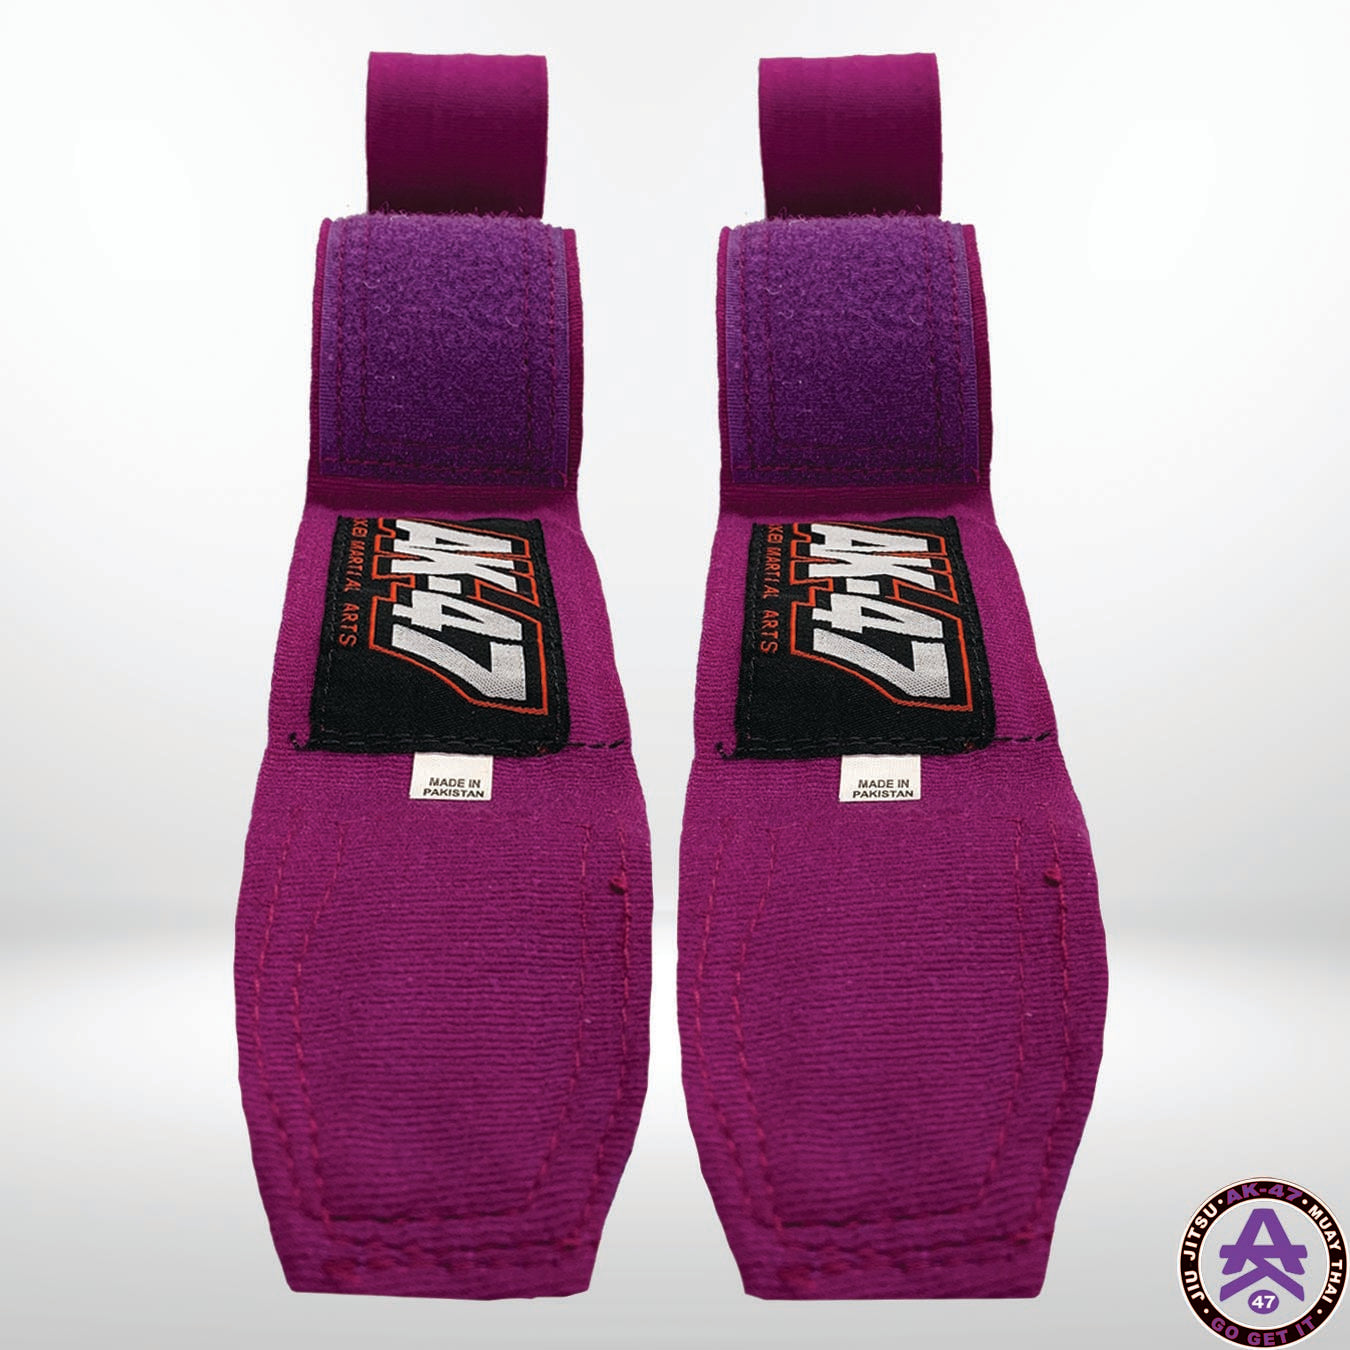 AK-47 Pro Kids Boxing Handwraps Purple